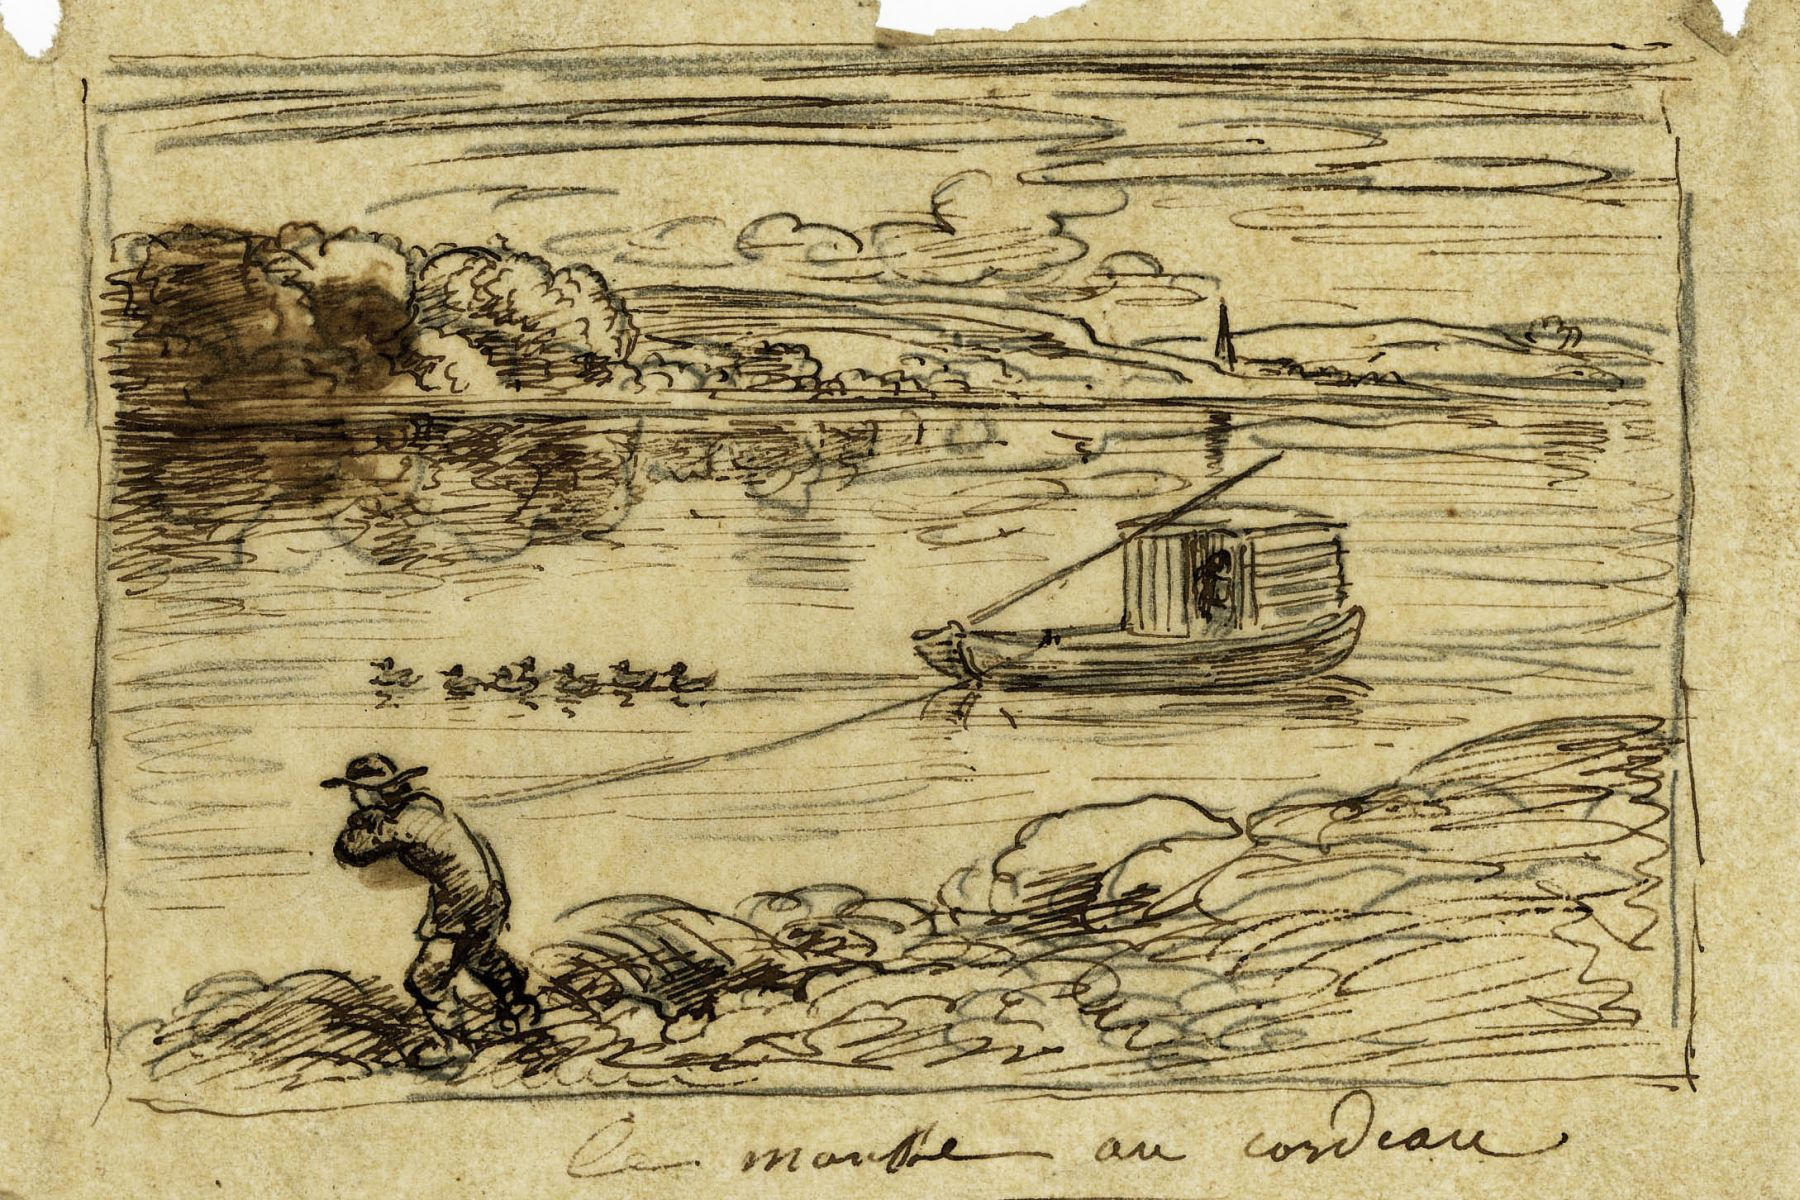 Charles F. Daubigny, The foam pulling the cord (The sorting to the rope)    Pen and ink on tracing paper  4 7/8 x 7 3/8 inches